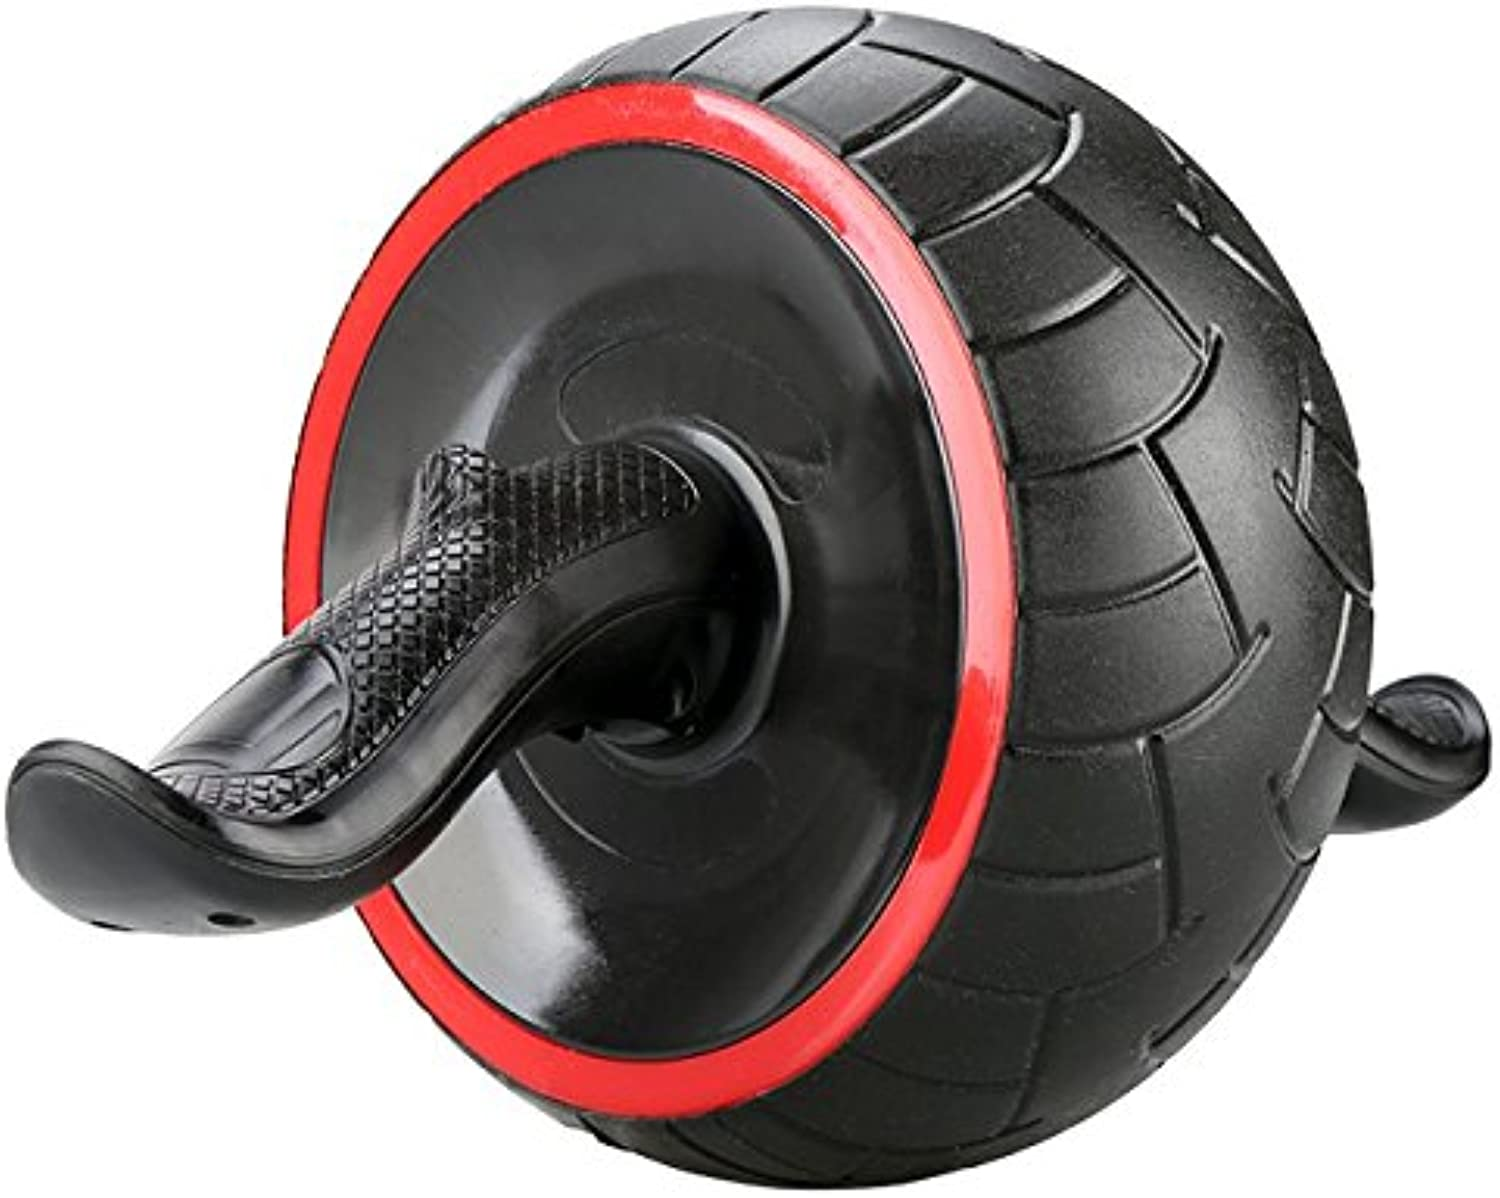 Dual Ab Roller Exercise Wheel & Thick Knee Pad The Perfect Fitness Exerciser  Portable Abdominal Workout Equipment with Soft Foam Handles  Great Core Exerciser for Men and Women  Home Gym Set 096